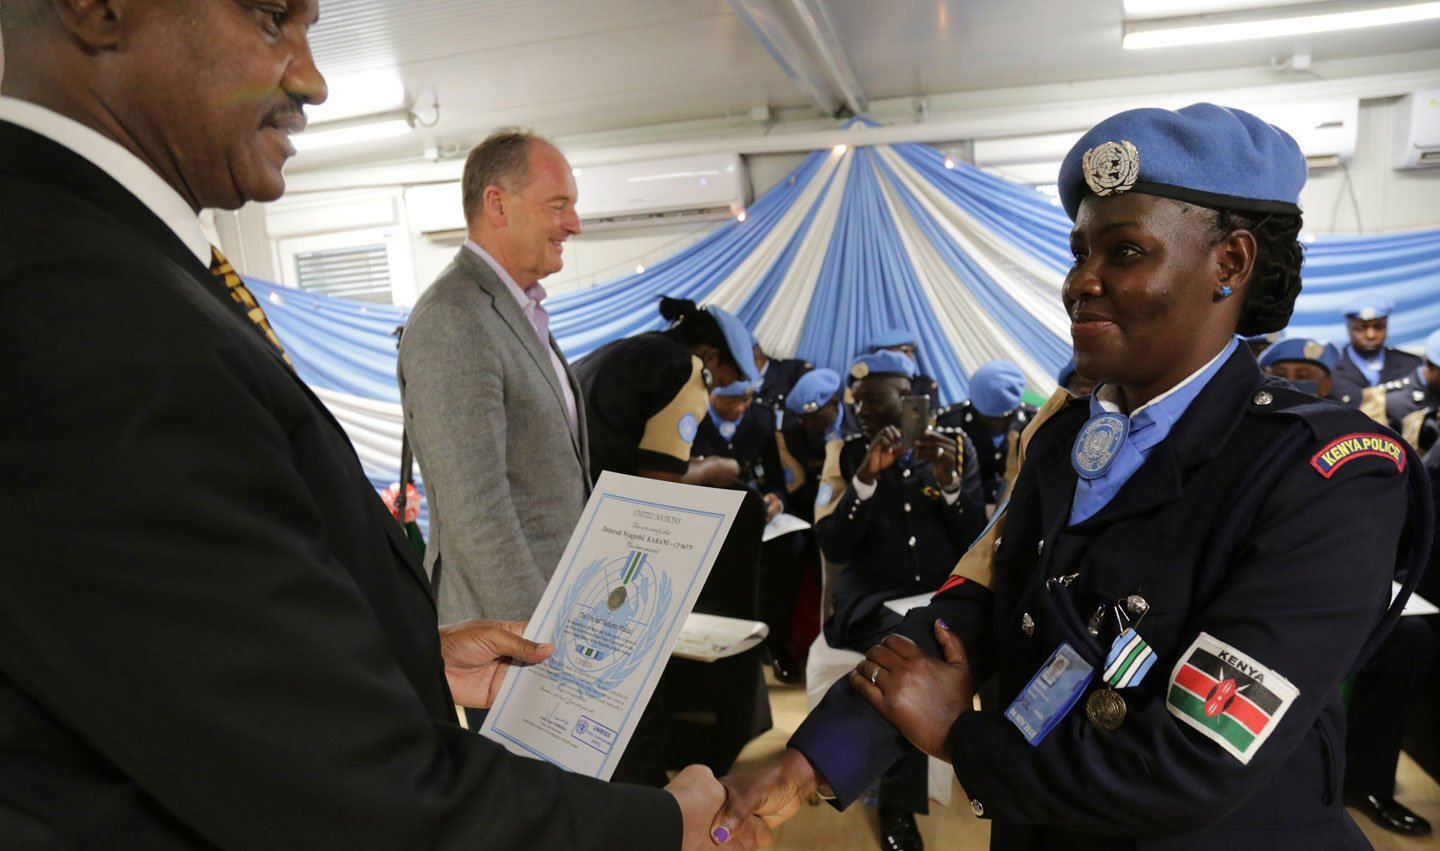 Kenyan police officers with the UN Mission in South Sudan are honoured in June 2018 for their service, including community policing and ensuring the safety of displaced people.